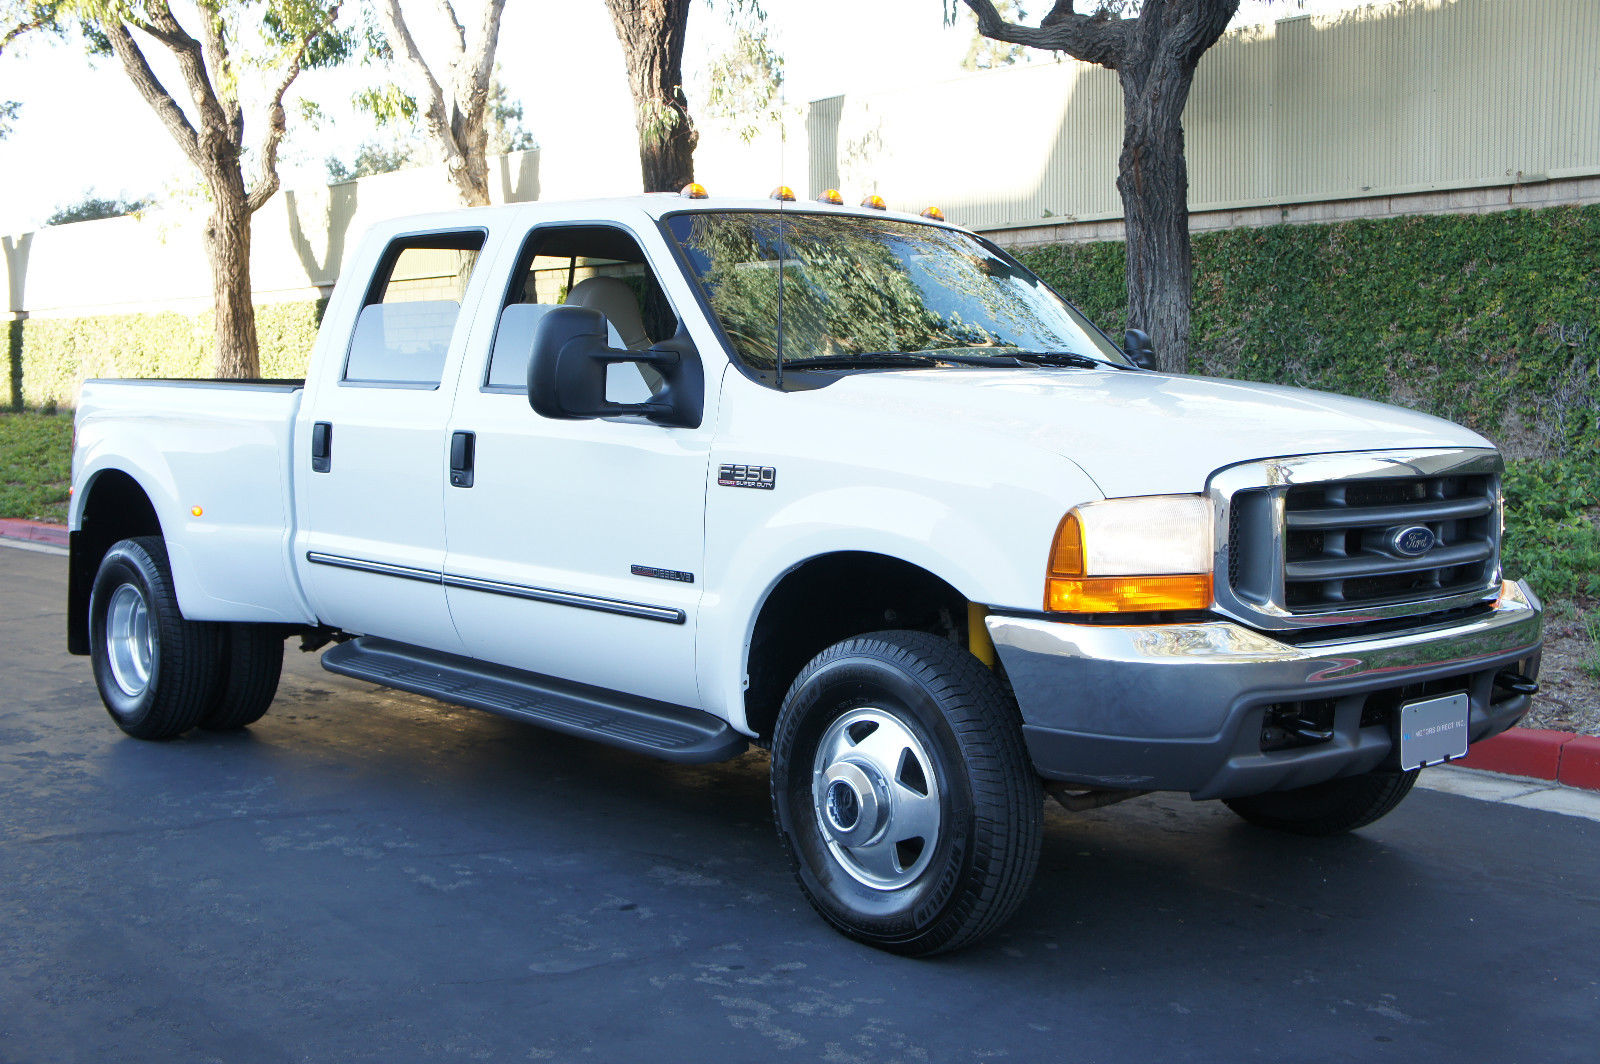 Ford F 250 Lifted >> 2000 Ford F-350 Crew Cab Short Bed Diesel for sale